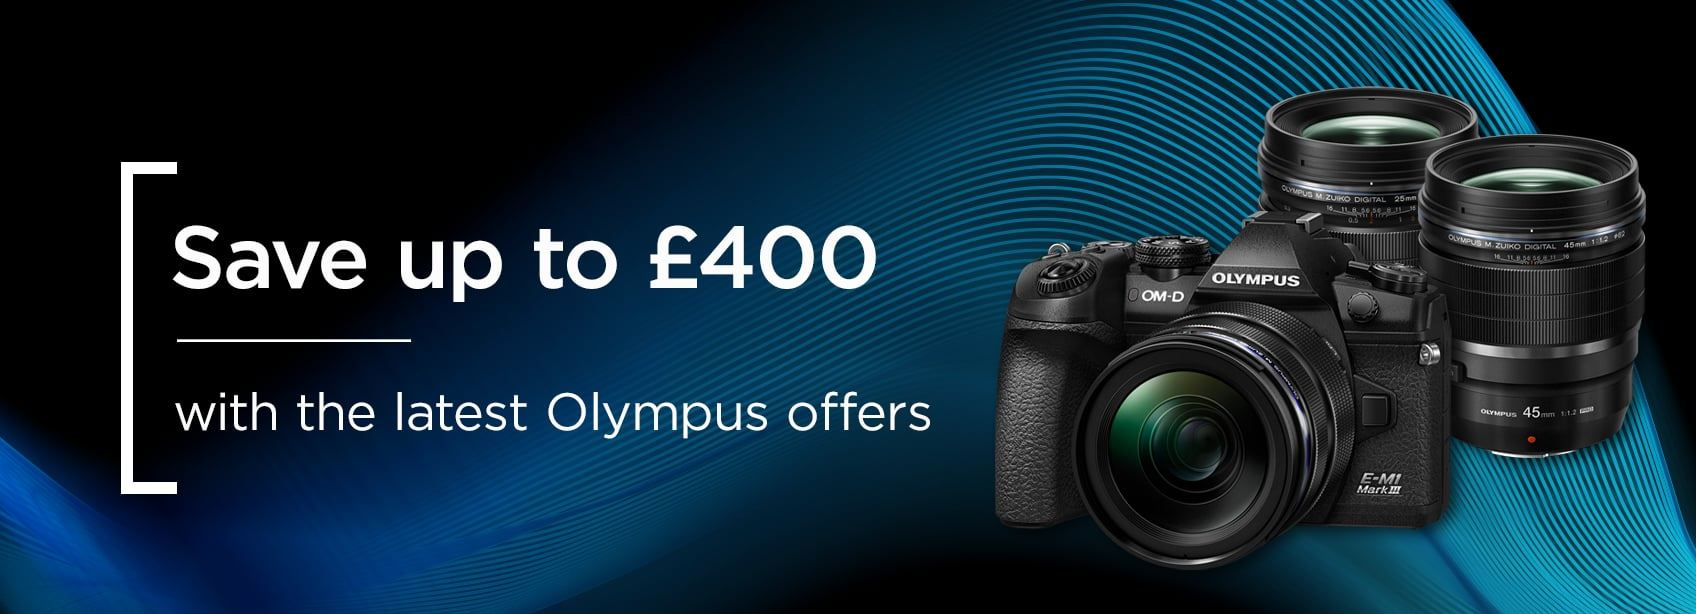 Save up to £400 with the latest Olympus offers